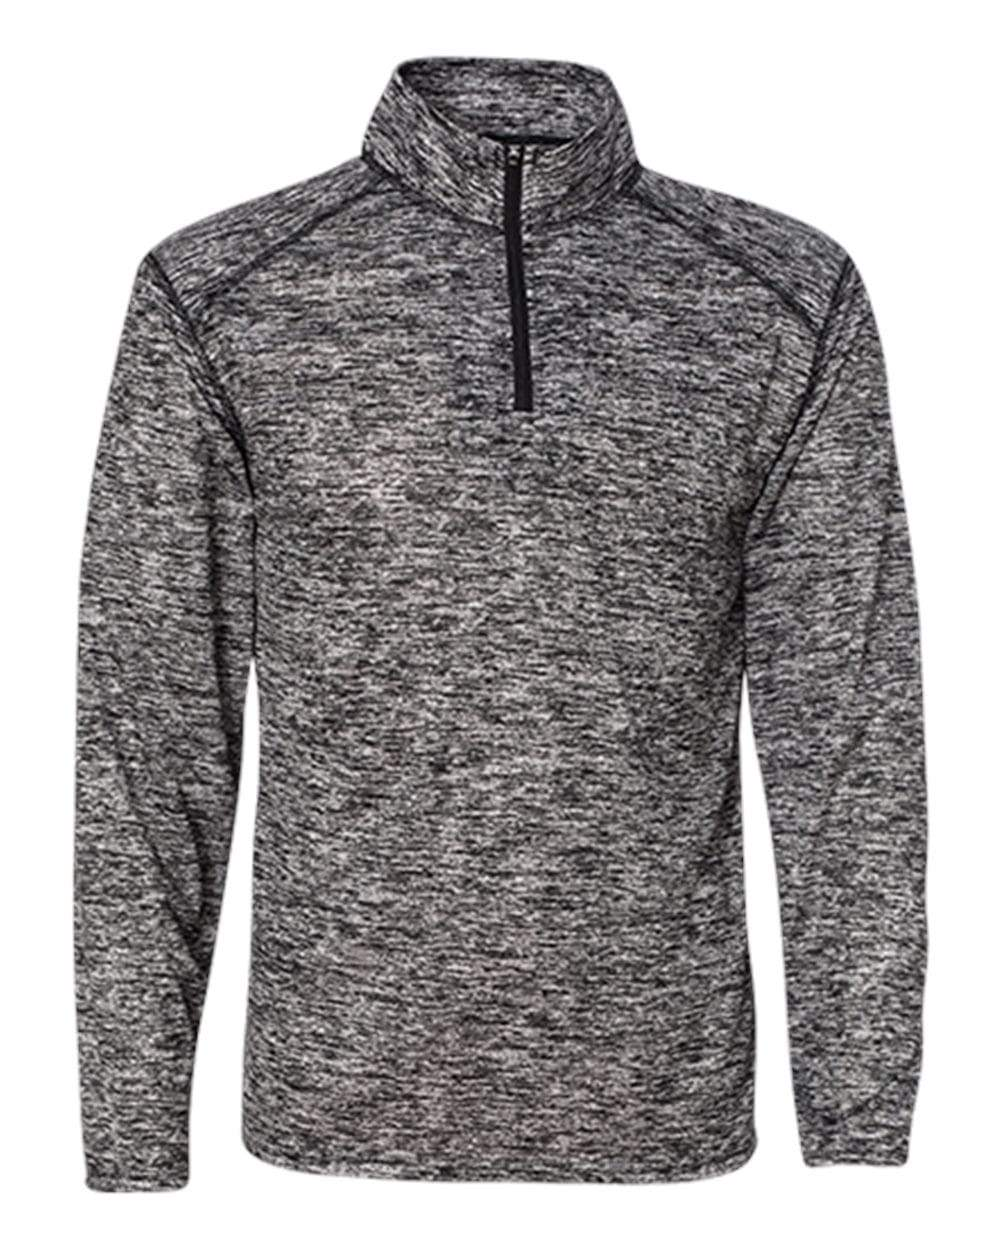 Badger Sport Layering S / BLACK Badger Men's Blend Quarter-Zip Pullover